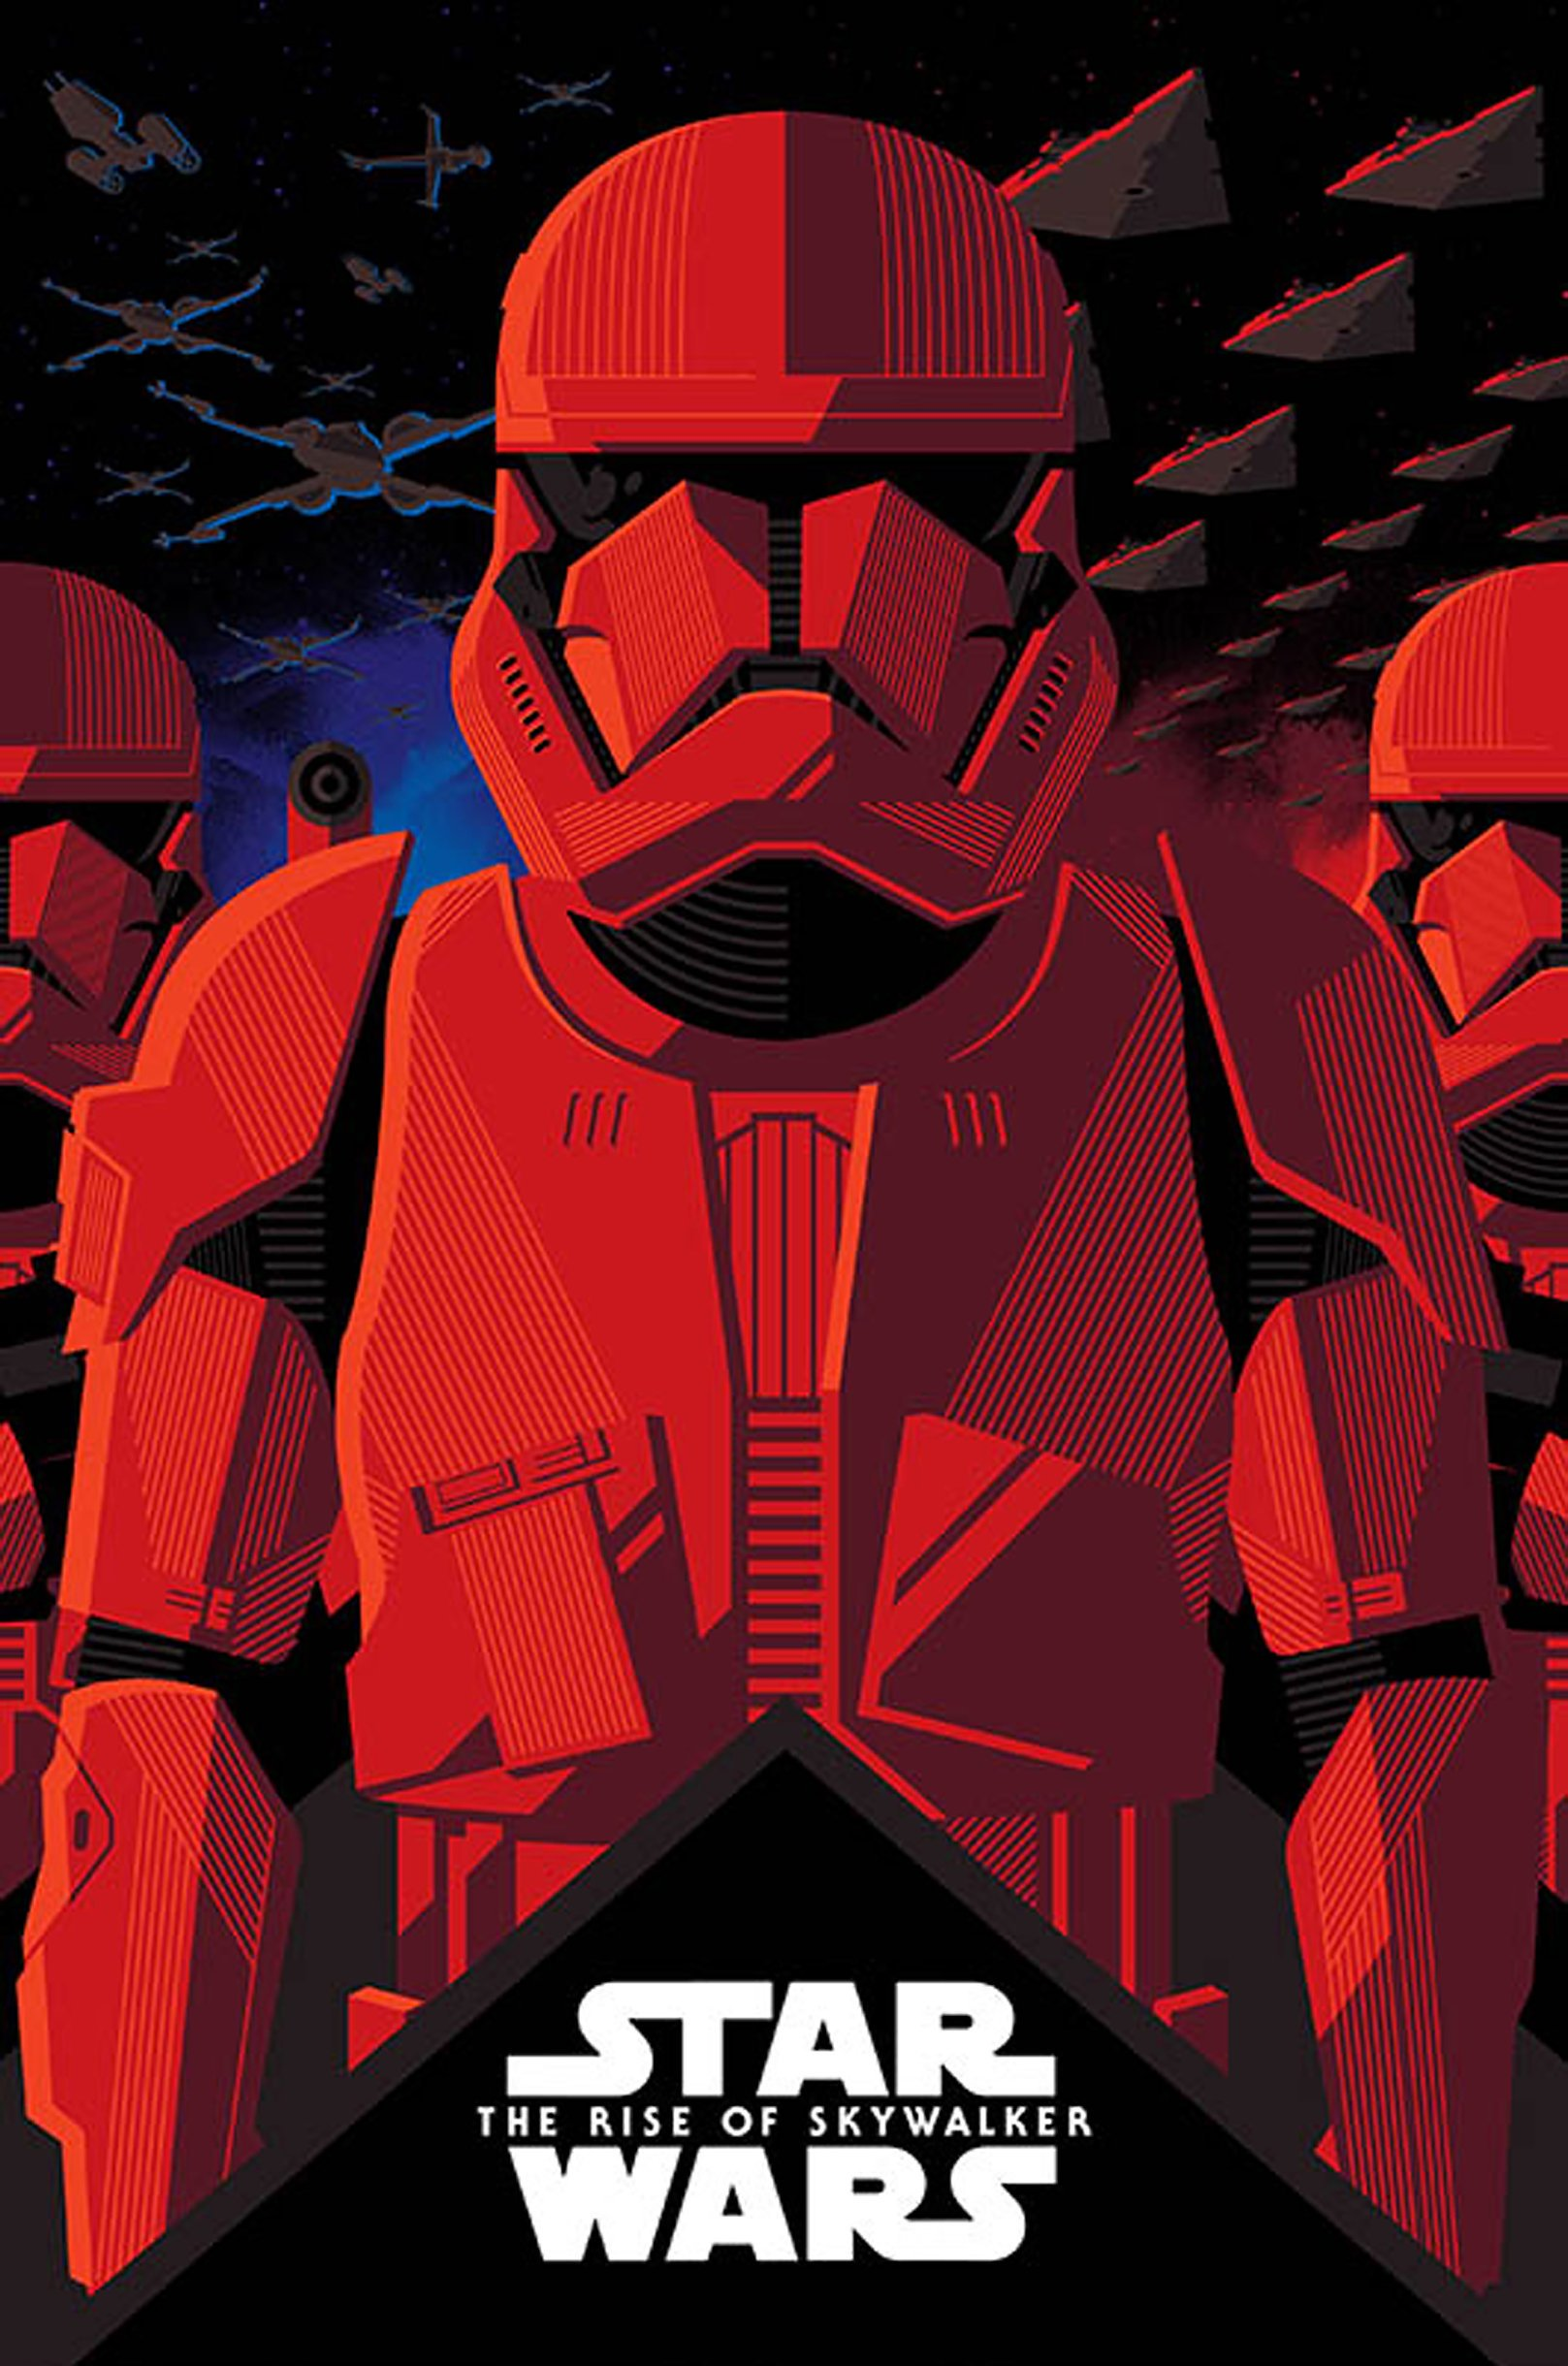 \'Star Wars: The Rise Of Skywalker\' New IMAX Poster